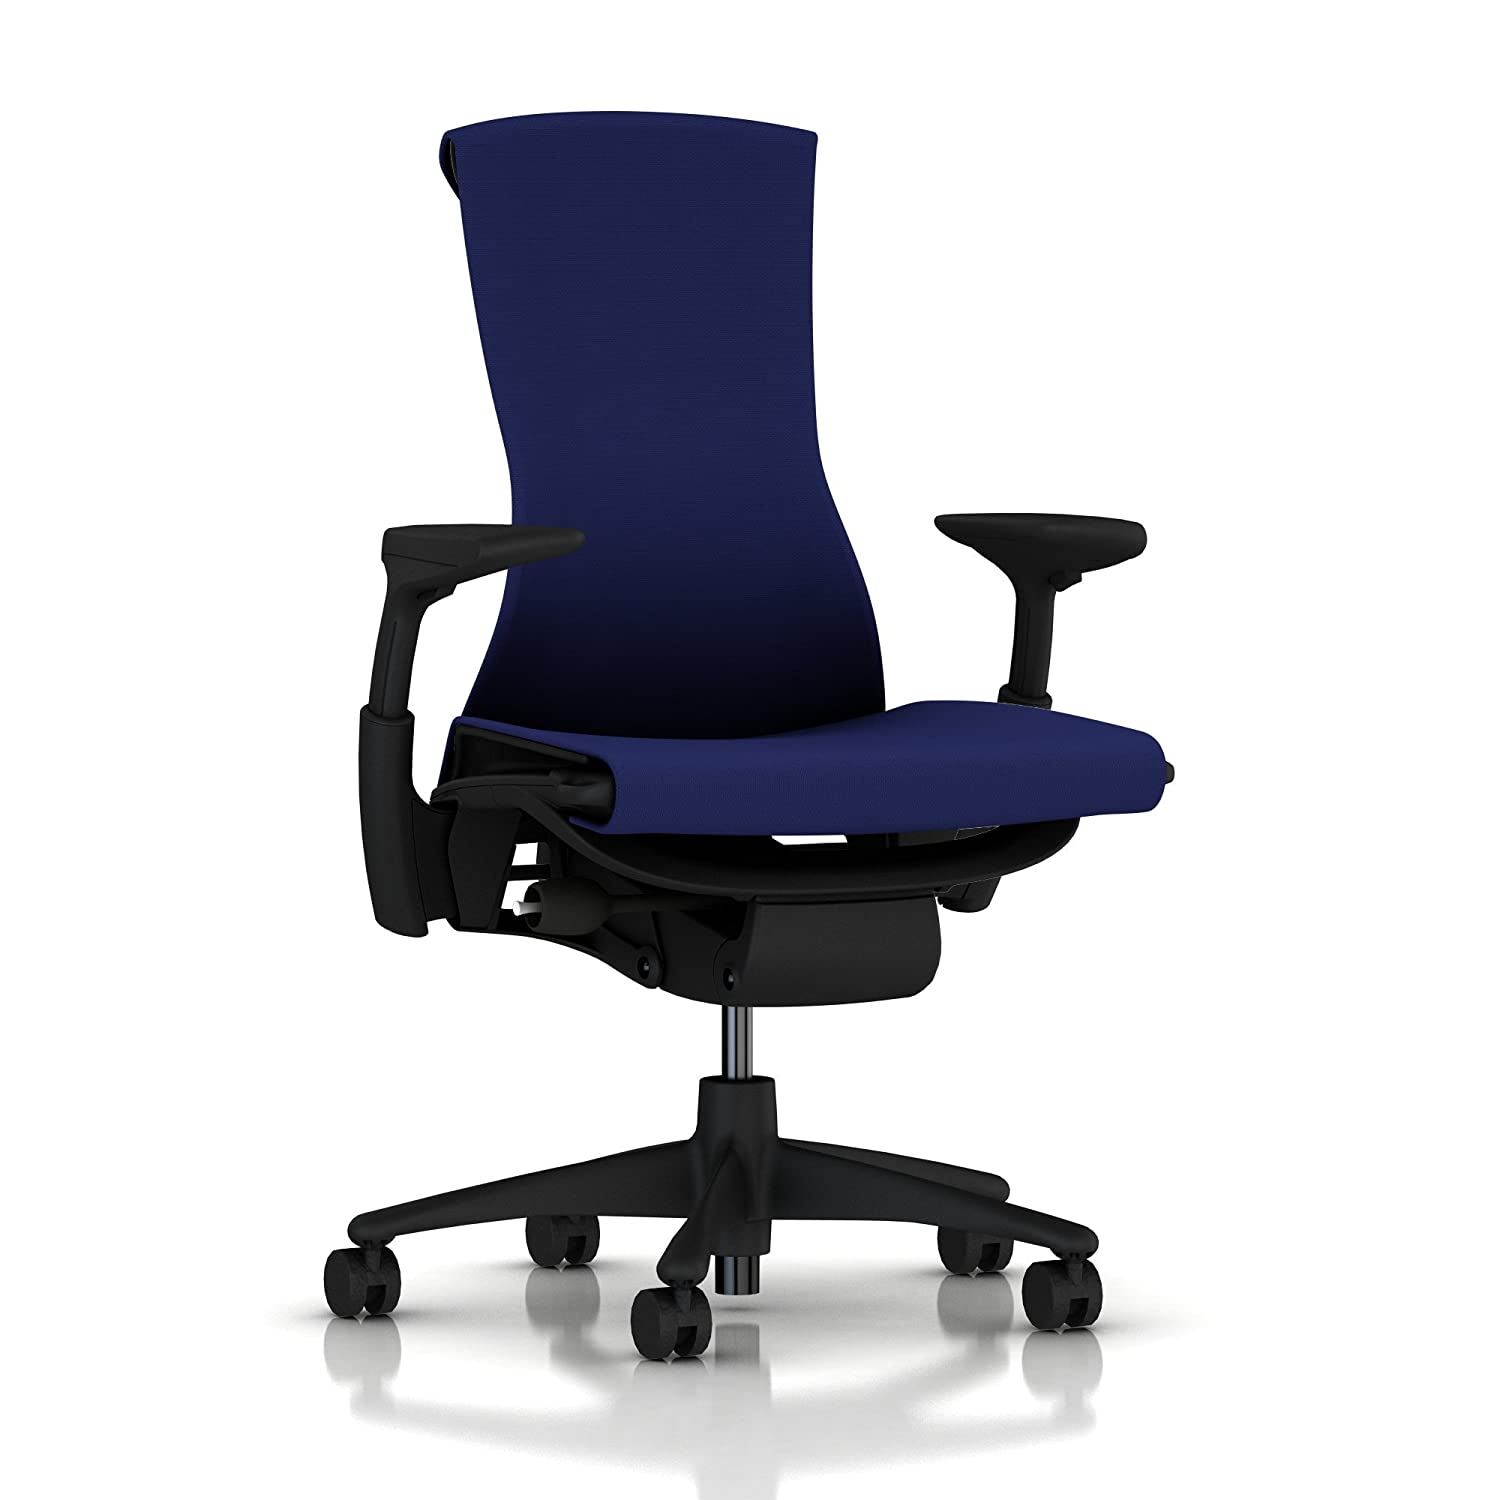 Best computer chair for gaming - Embody Chair By Herman Miller Fully Adjustable Arms